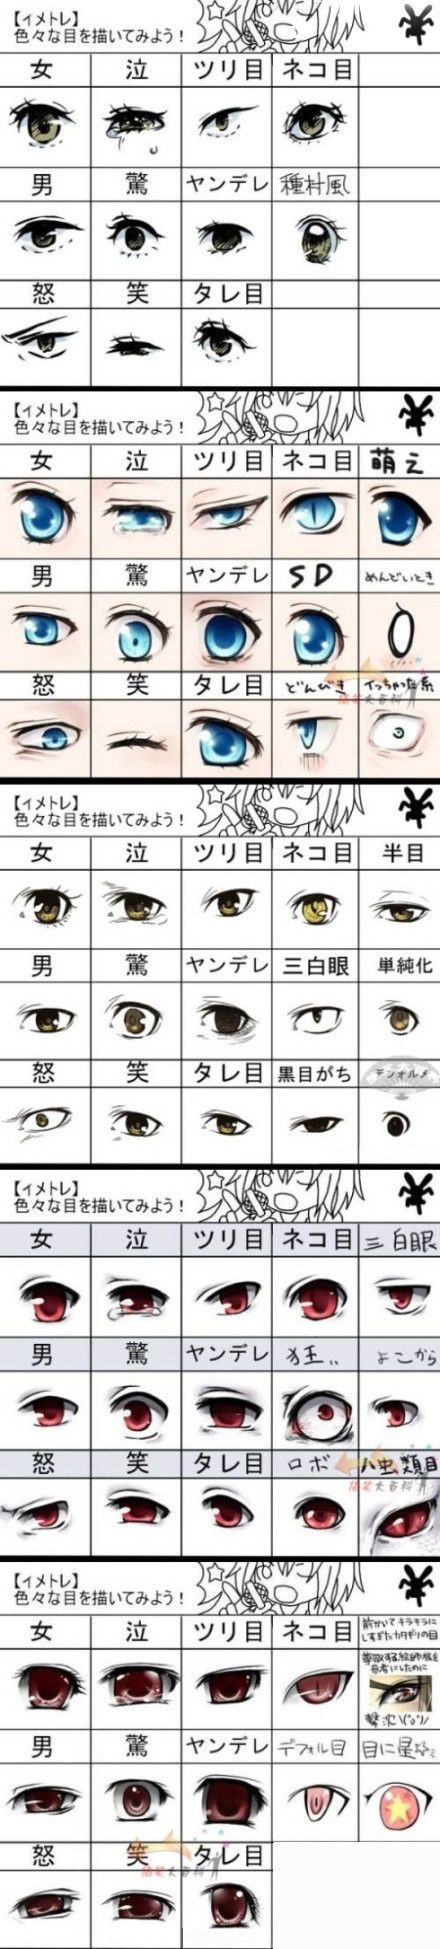 眼睛,How to Draw Manga People,Resources for Art Students / Art School Portfolio @ CAPI ::: Create Art Portfolio Ideas at milliande.com , How to Draw Manga Figures, Whimsical Human Figure, Sketch, Draw, Manga, Anime, Girls, Cute, Kawaii,Eyes, Eye